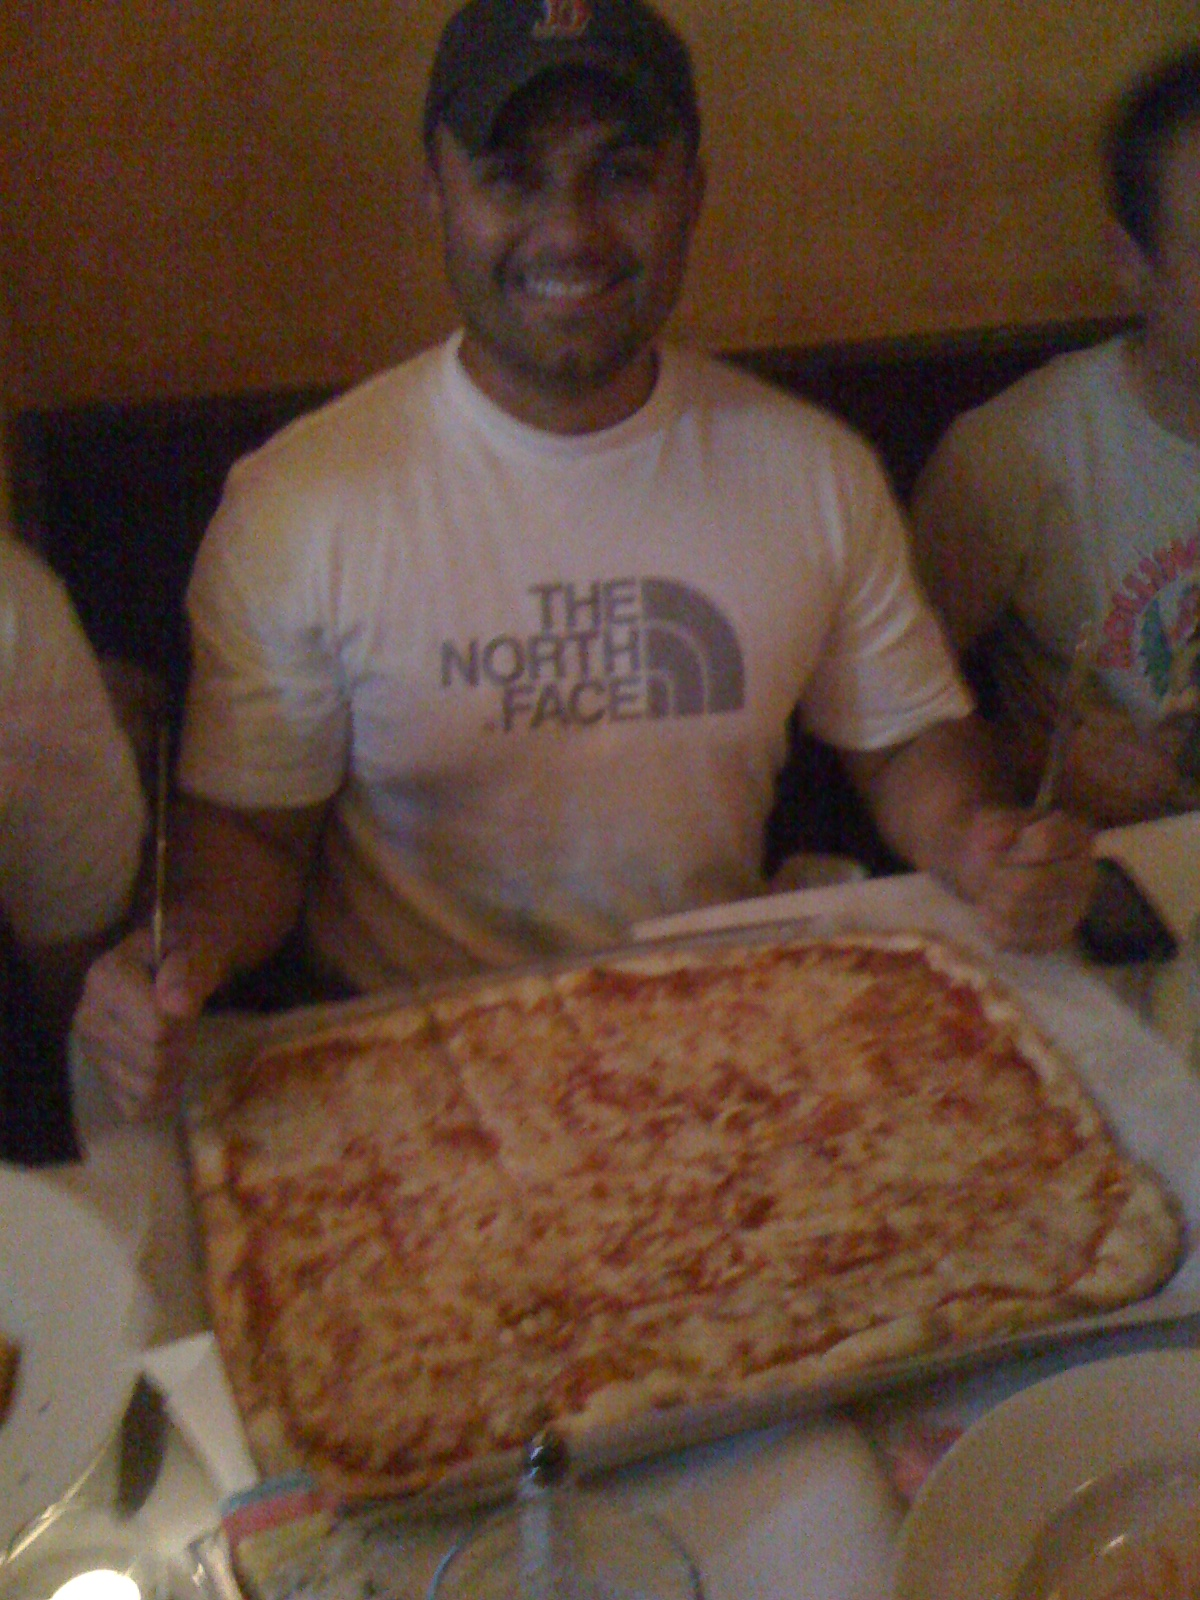 Thieu orders a HUGE pizza, the cornerstone of a world-class athlete's diet!